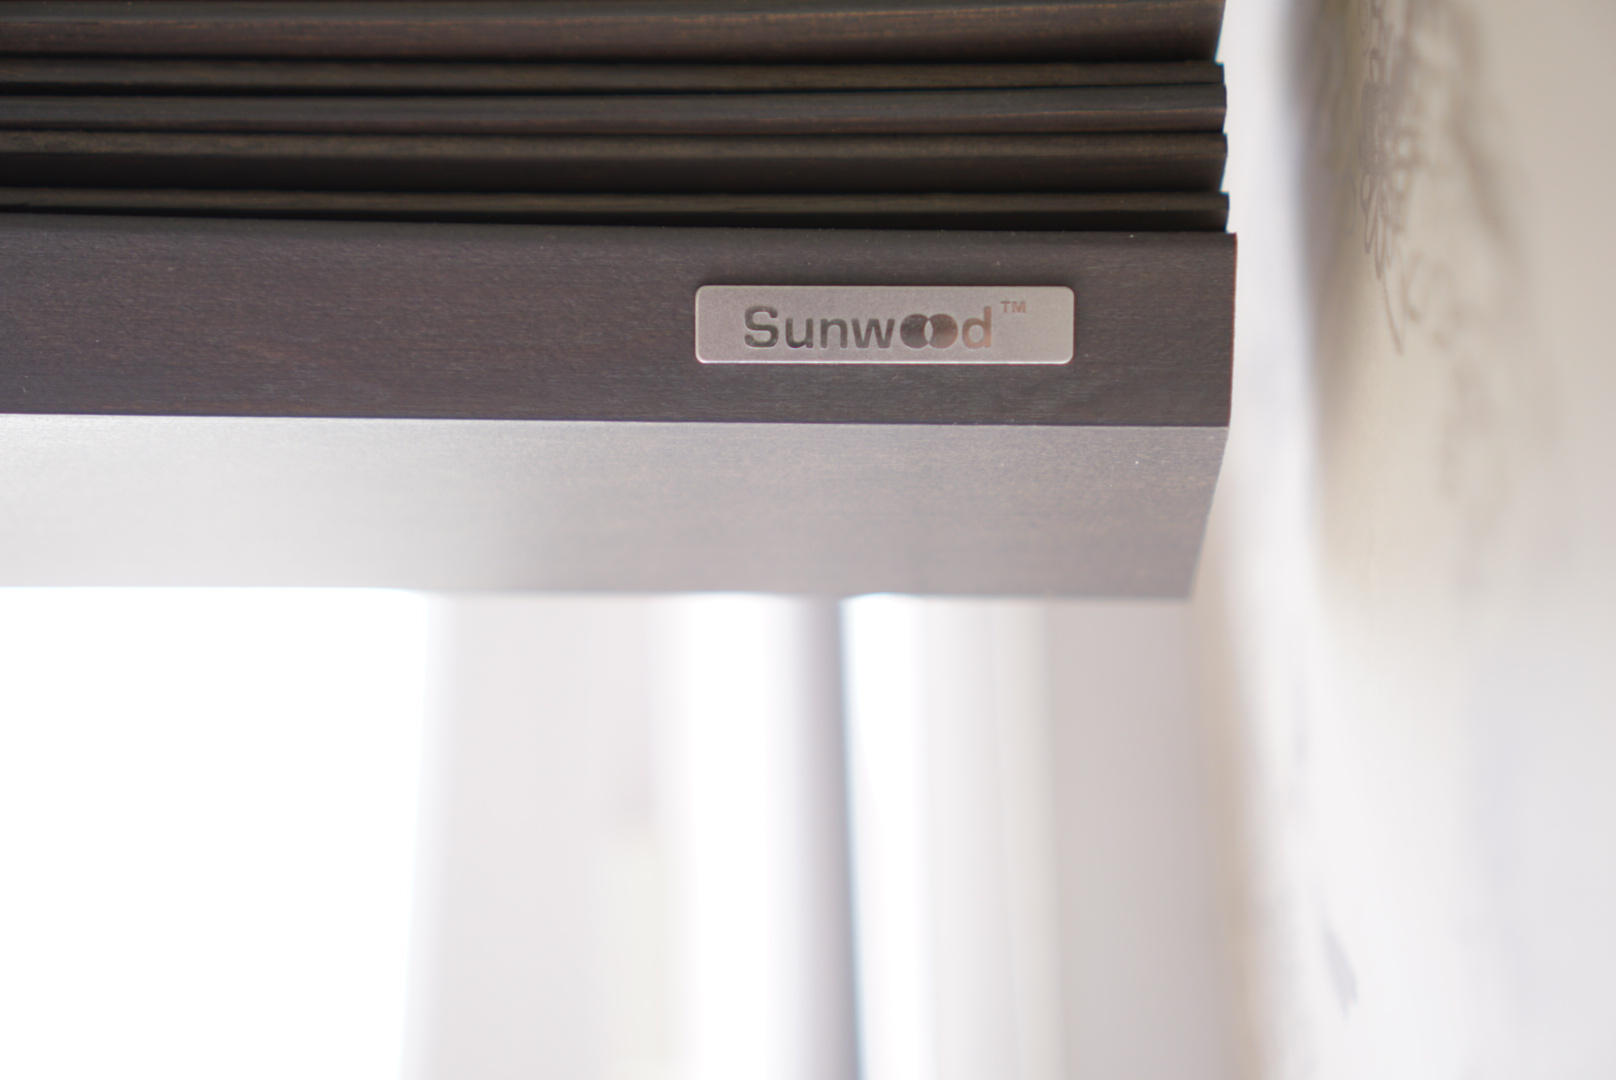 close up picture of the make of some blinds